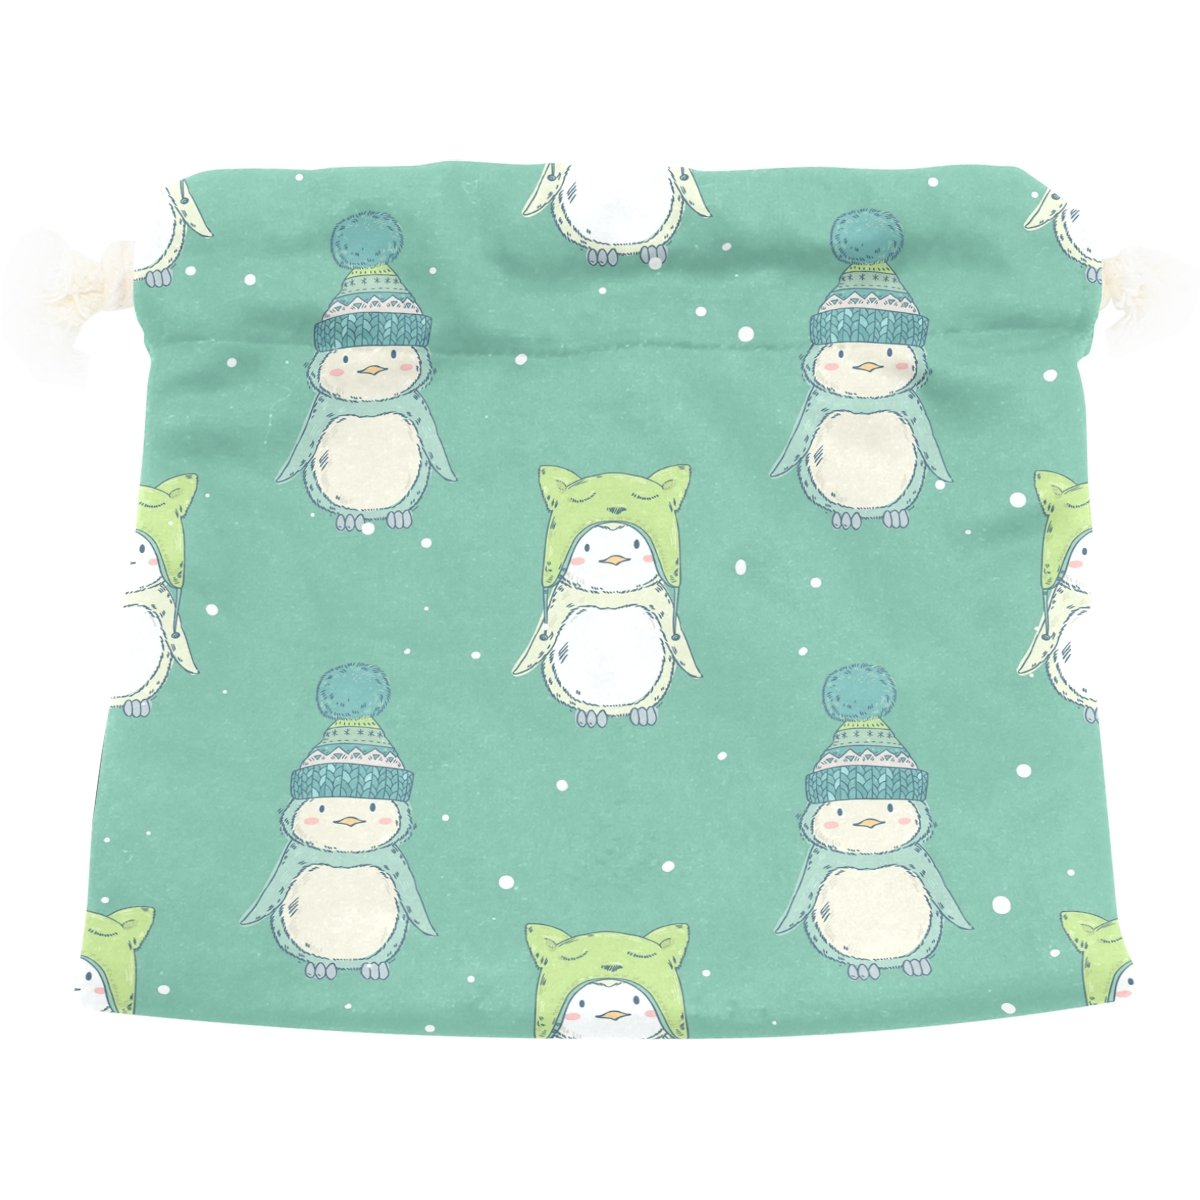 Dragon Sword Cute Cartoon Penguins Friends Gift Bags Jewelry Drawstring Pouches for Wedding Party, 5.5x5.5 Inch